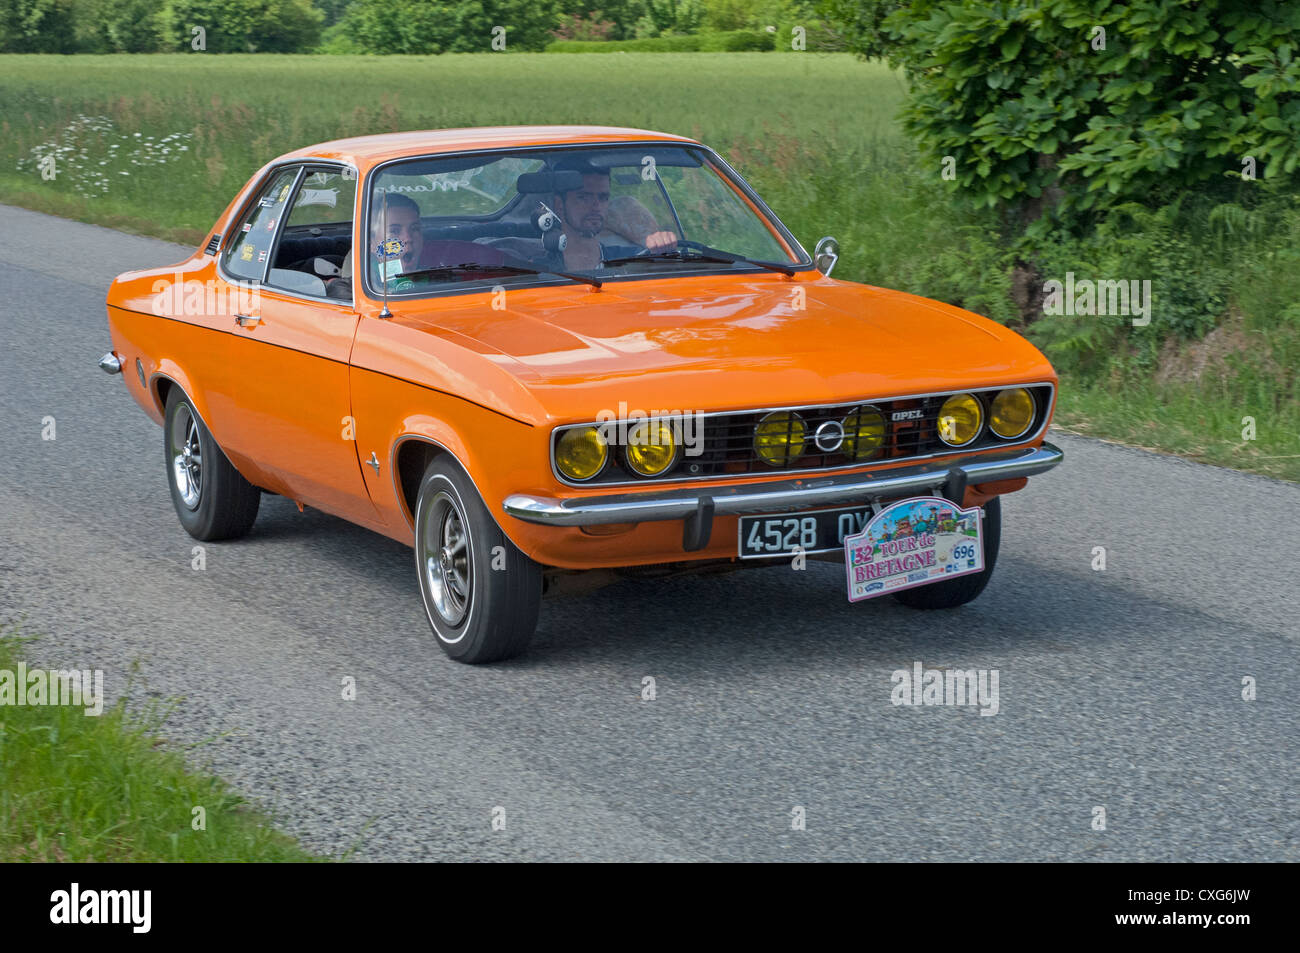 Opel Manta High Resolution Stock Photography And Images Alamy